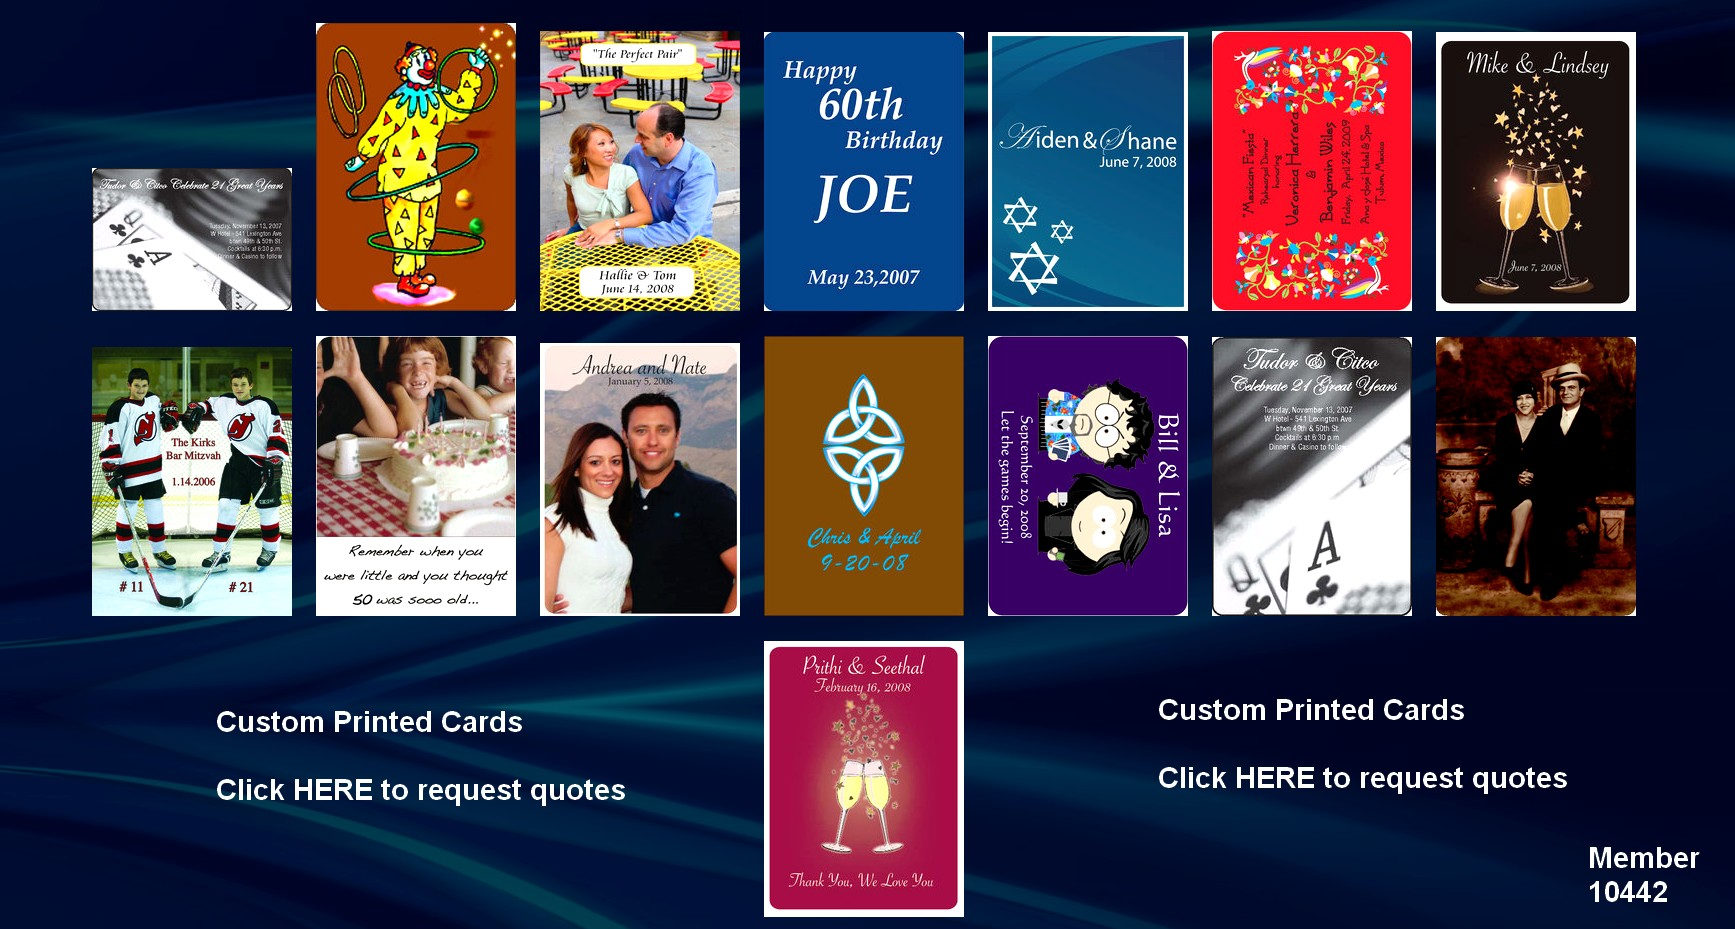 personalized custom printed playing cards for sale